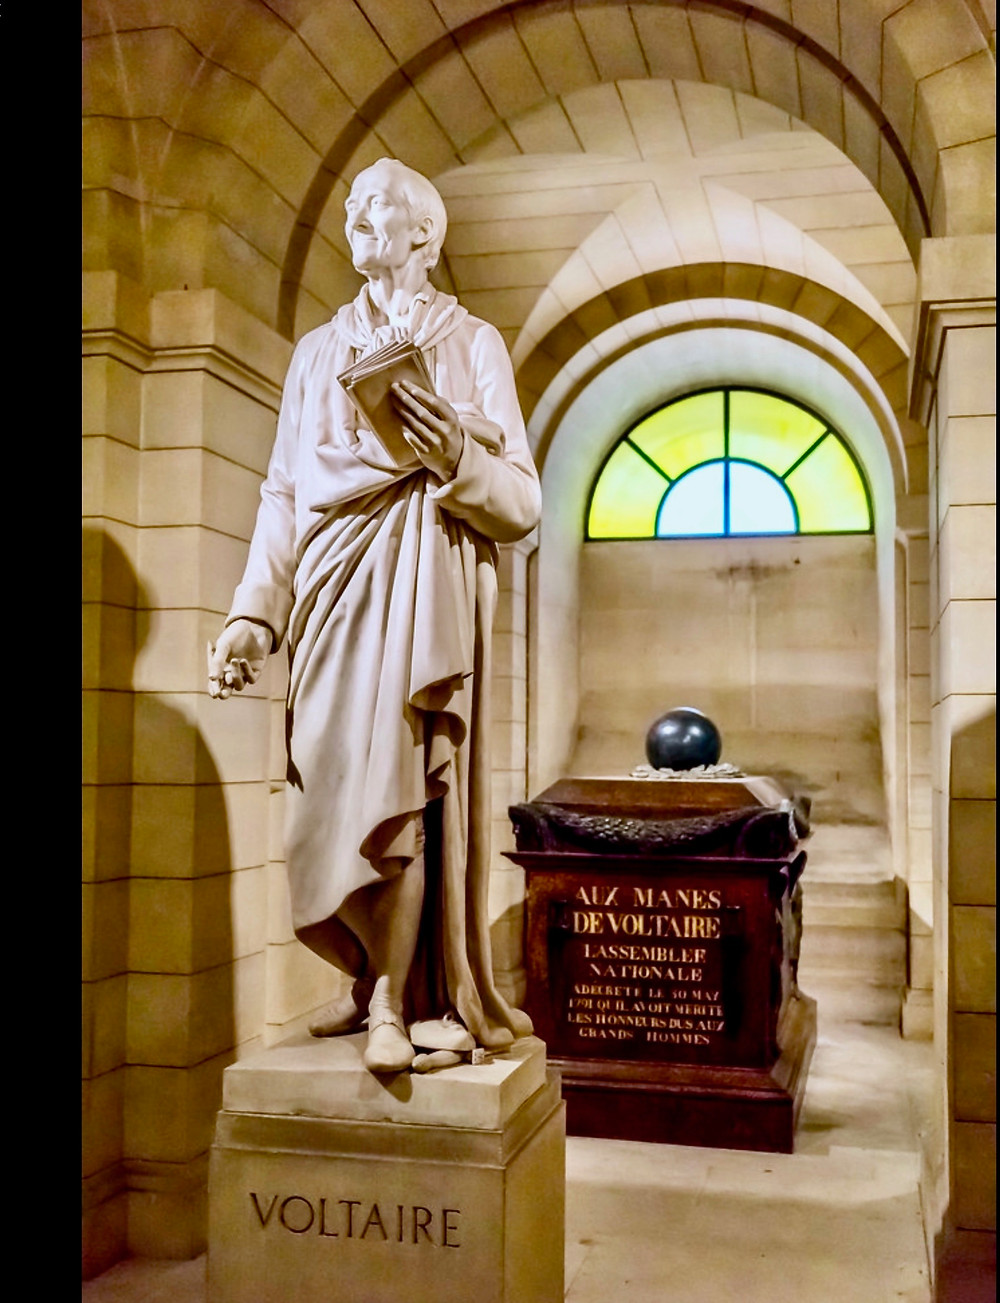 Voltaire's tomb in the Pantheon